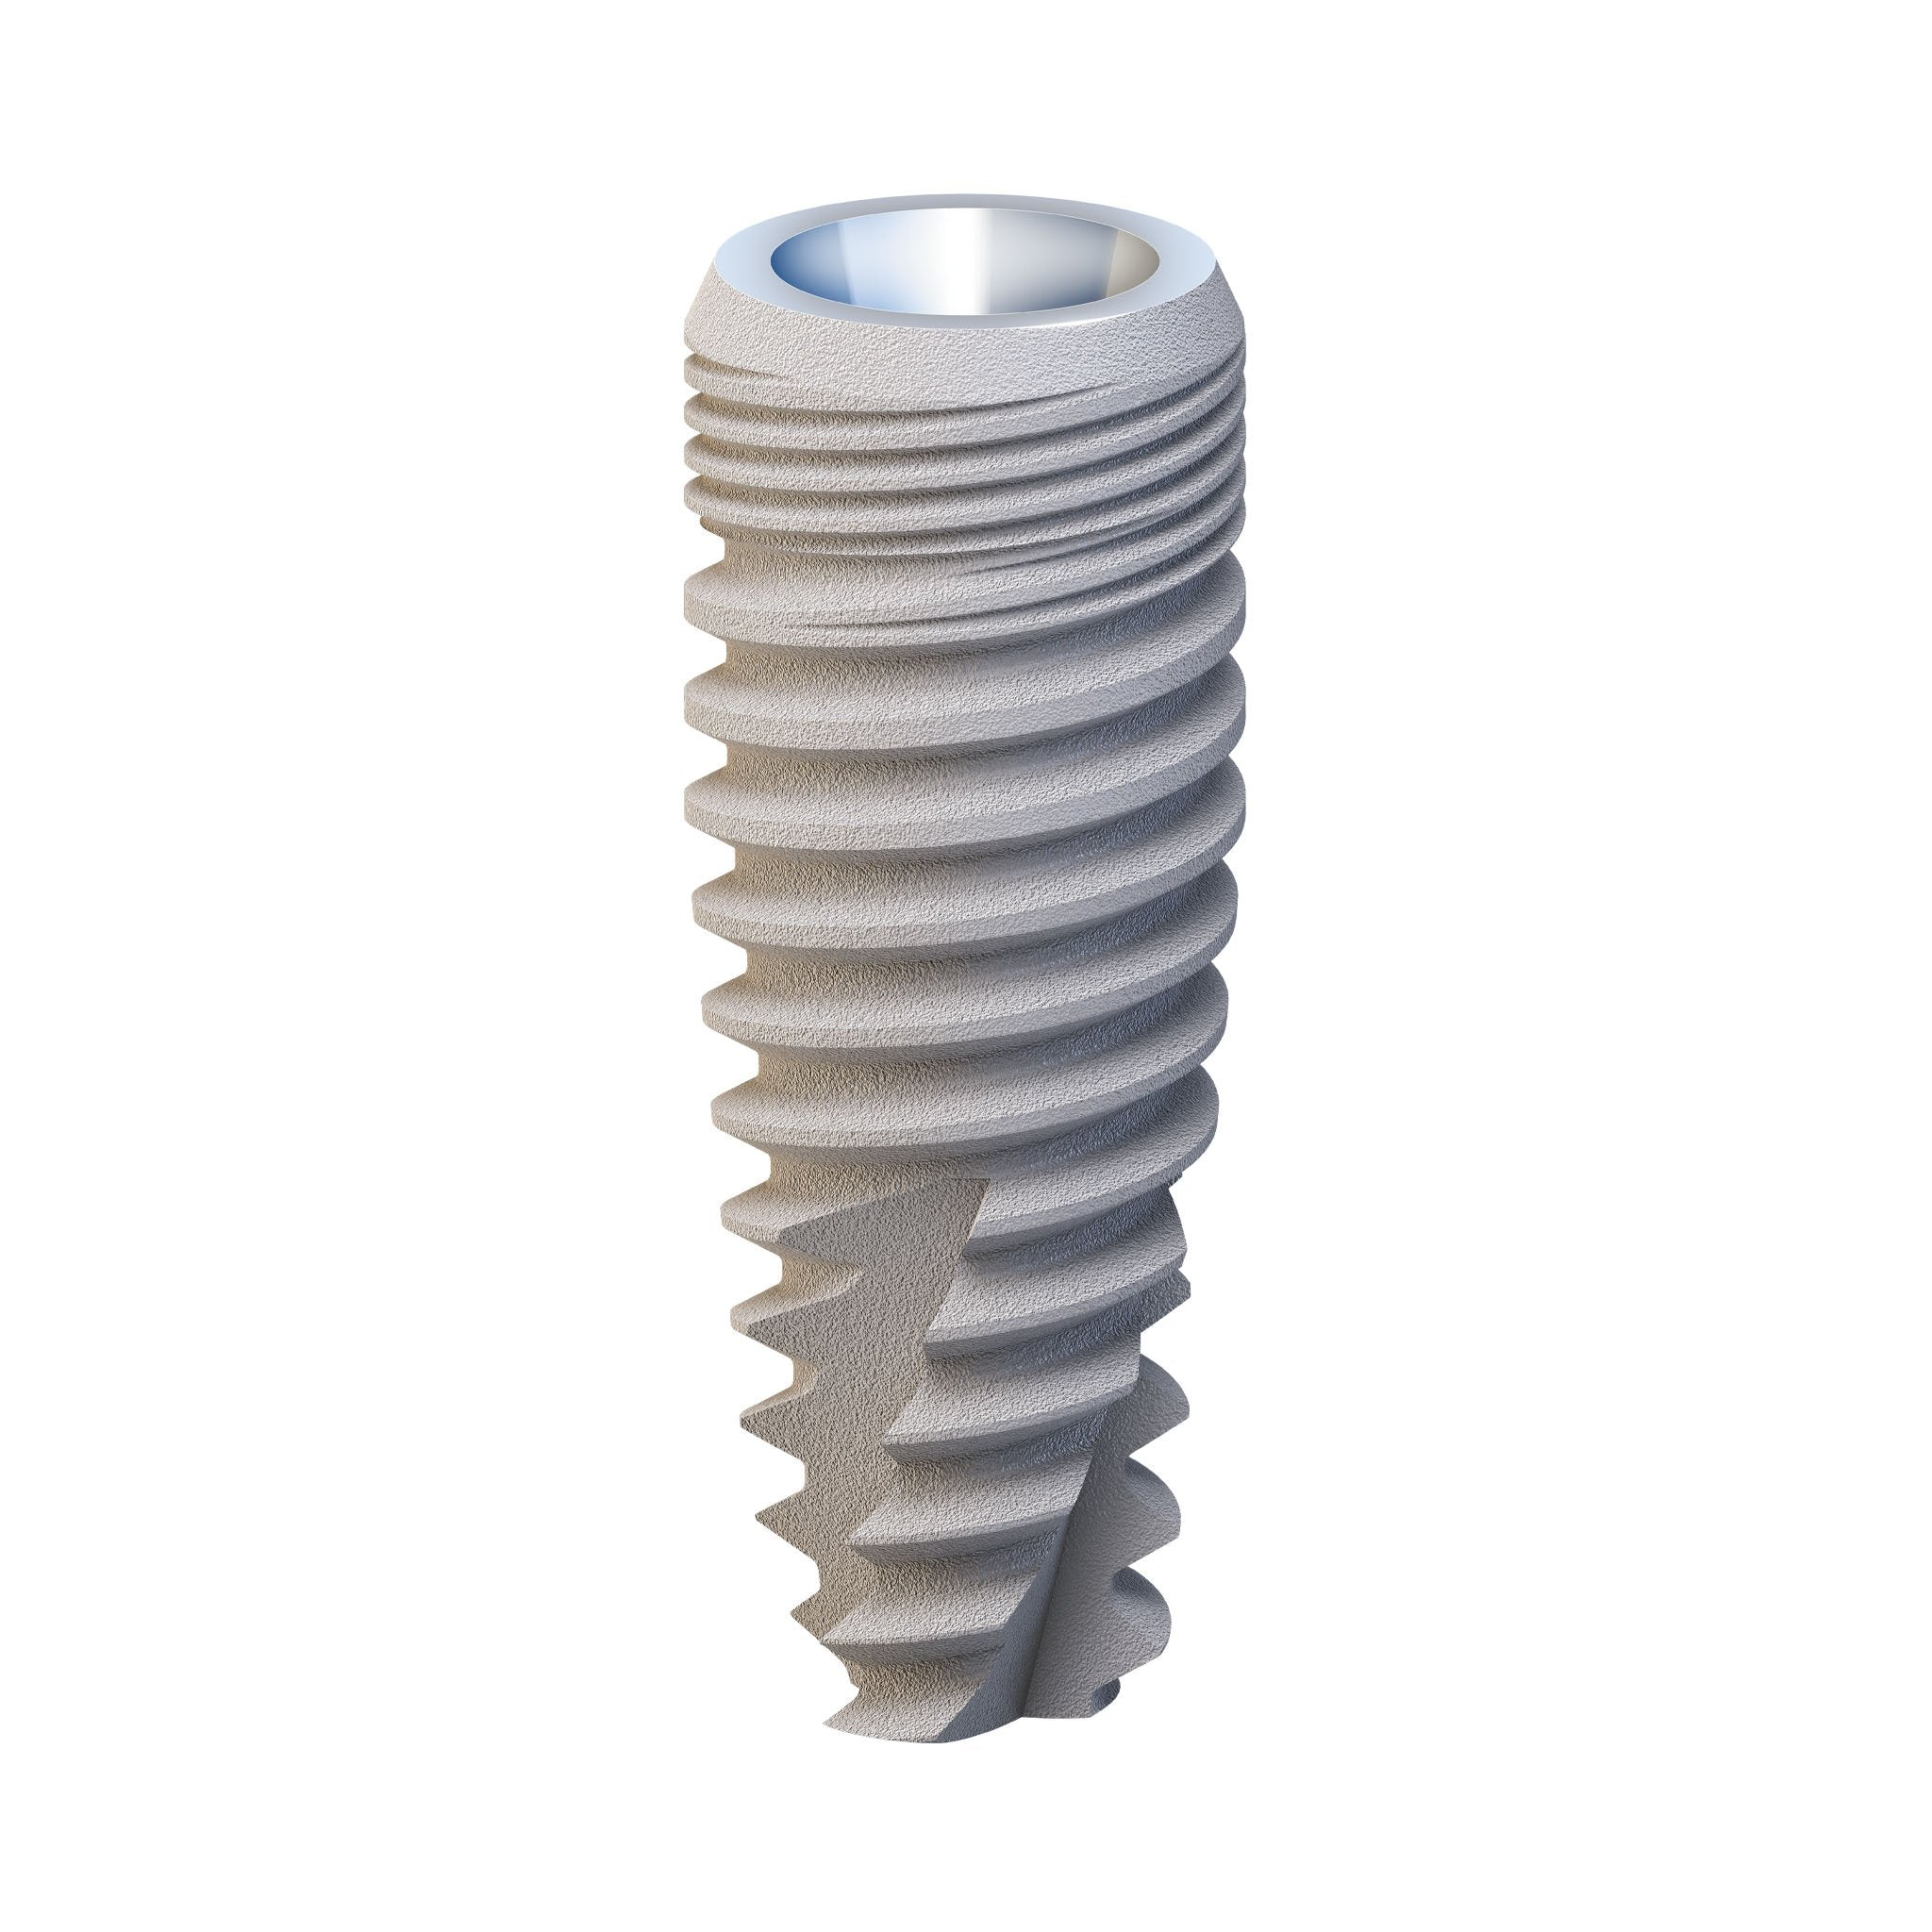 Conical Active Implant Ø 4.2 x 11 | K3